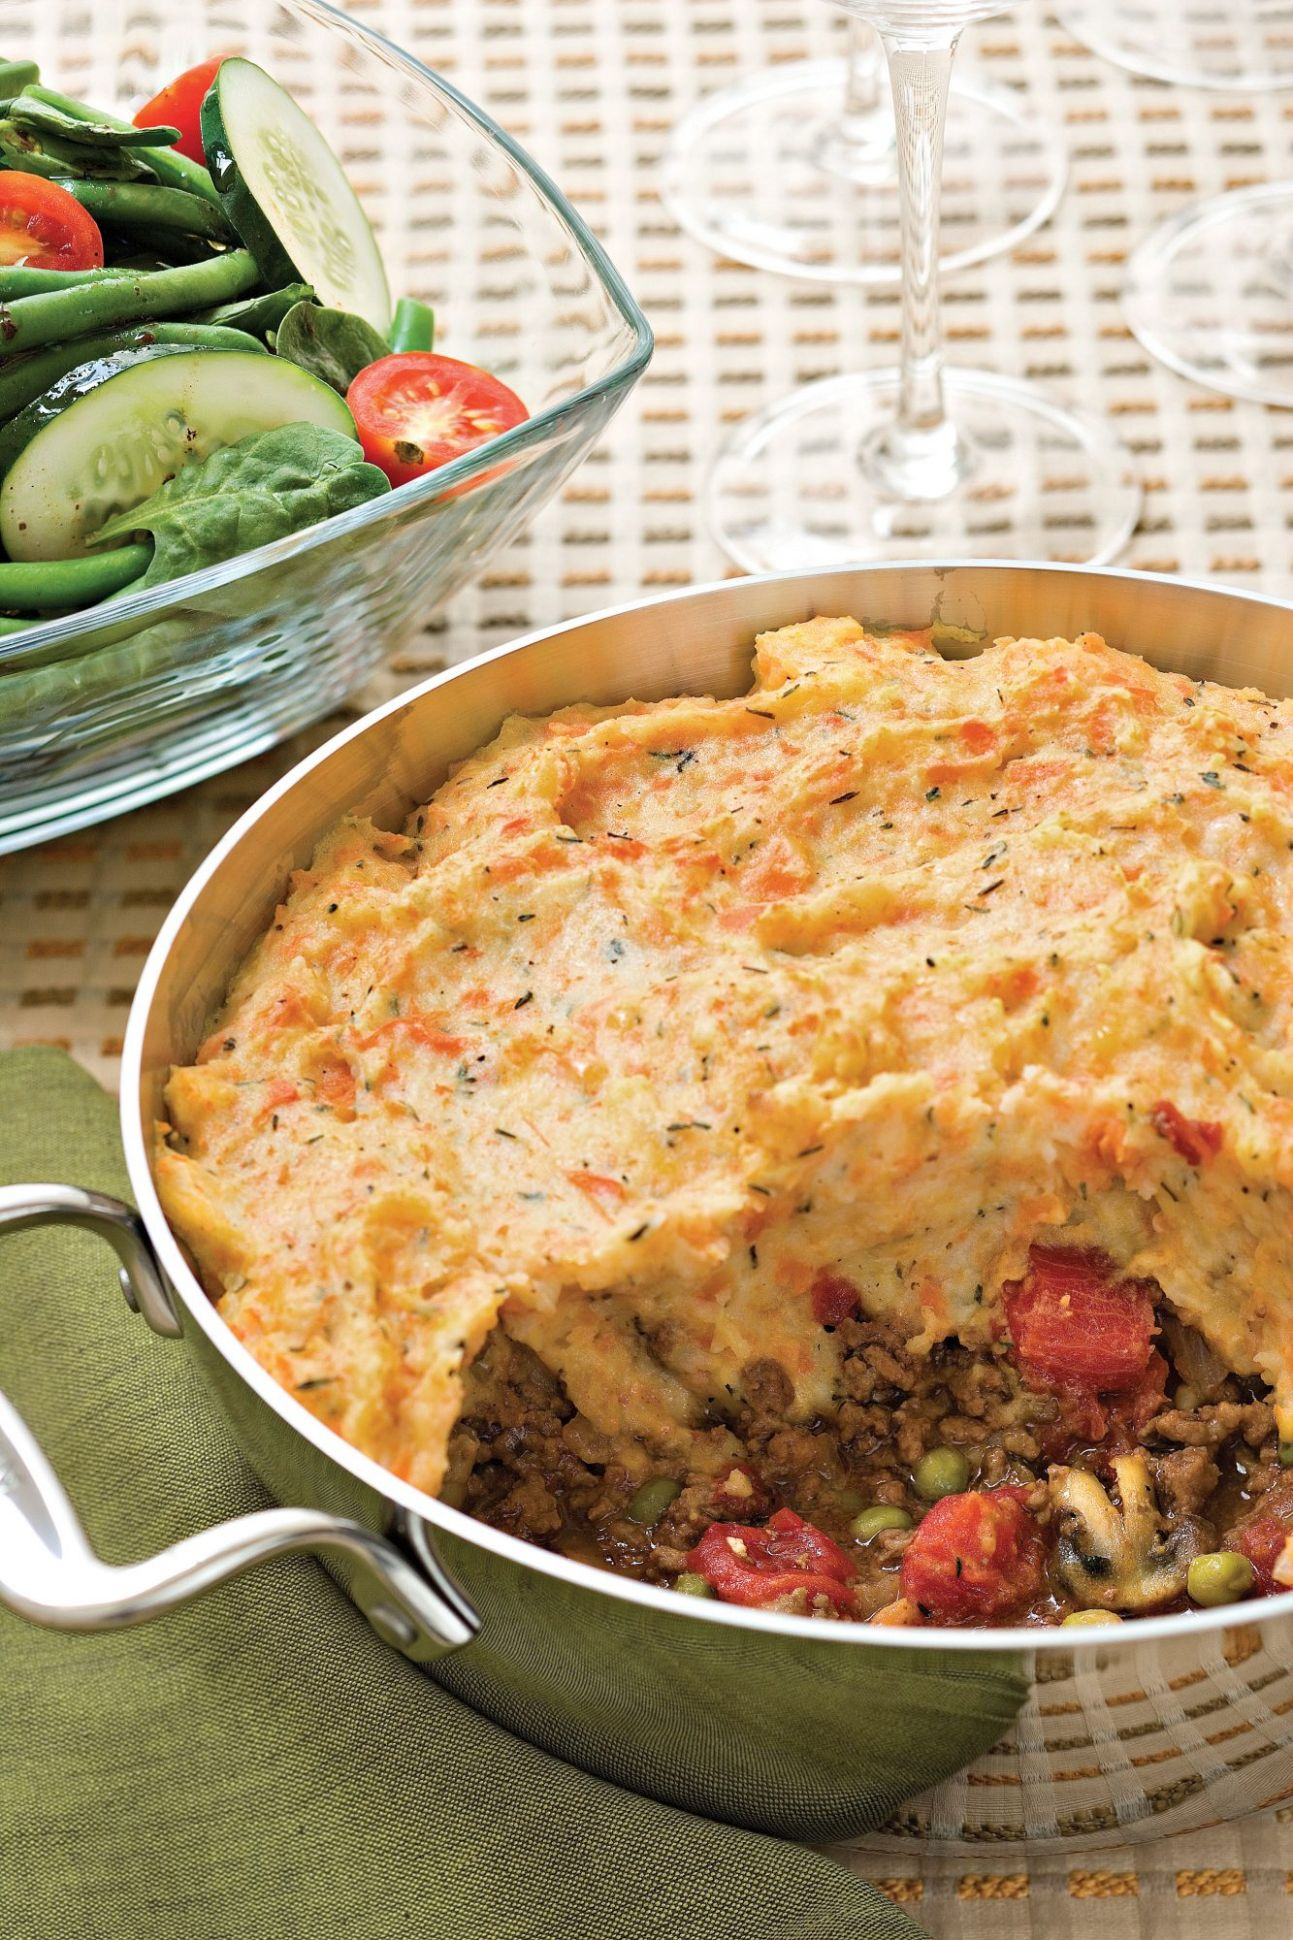 8 Quick Ground Beef Recipes | Southern Living - Easy Recipes Using Ground Beef